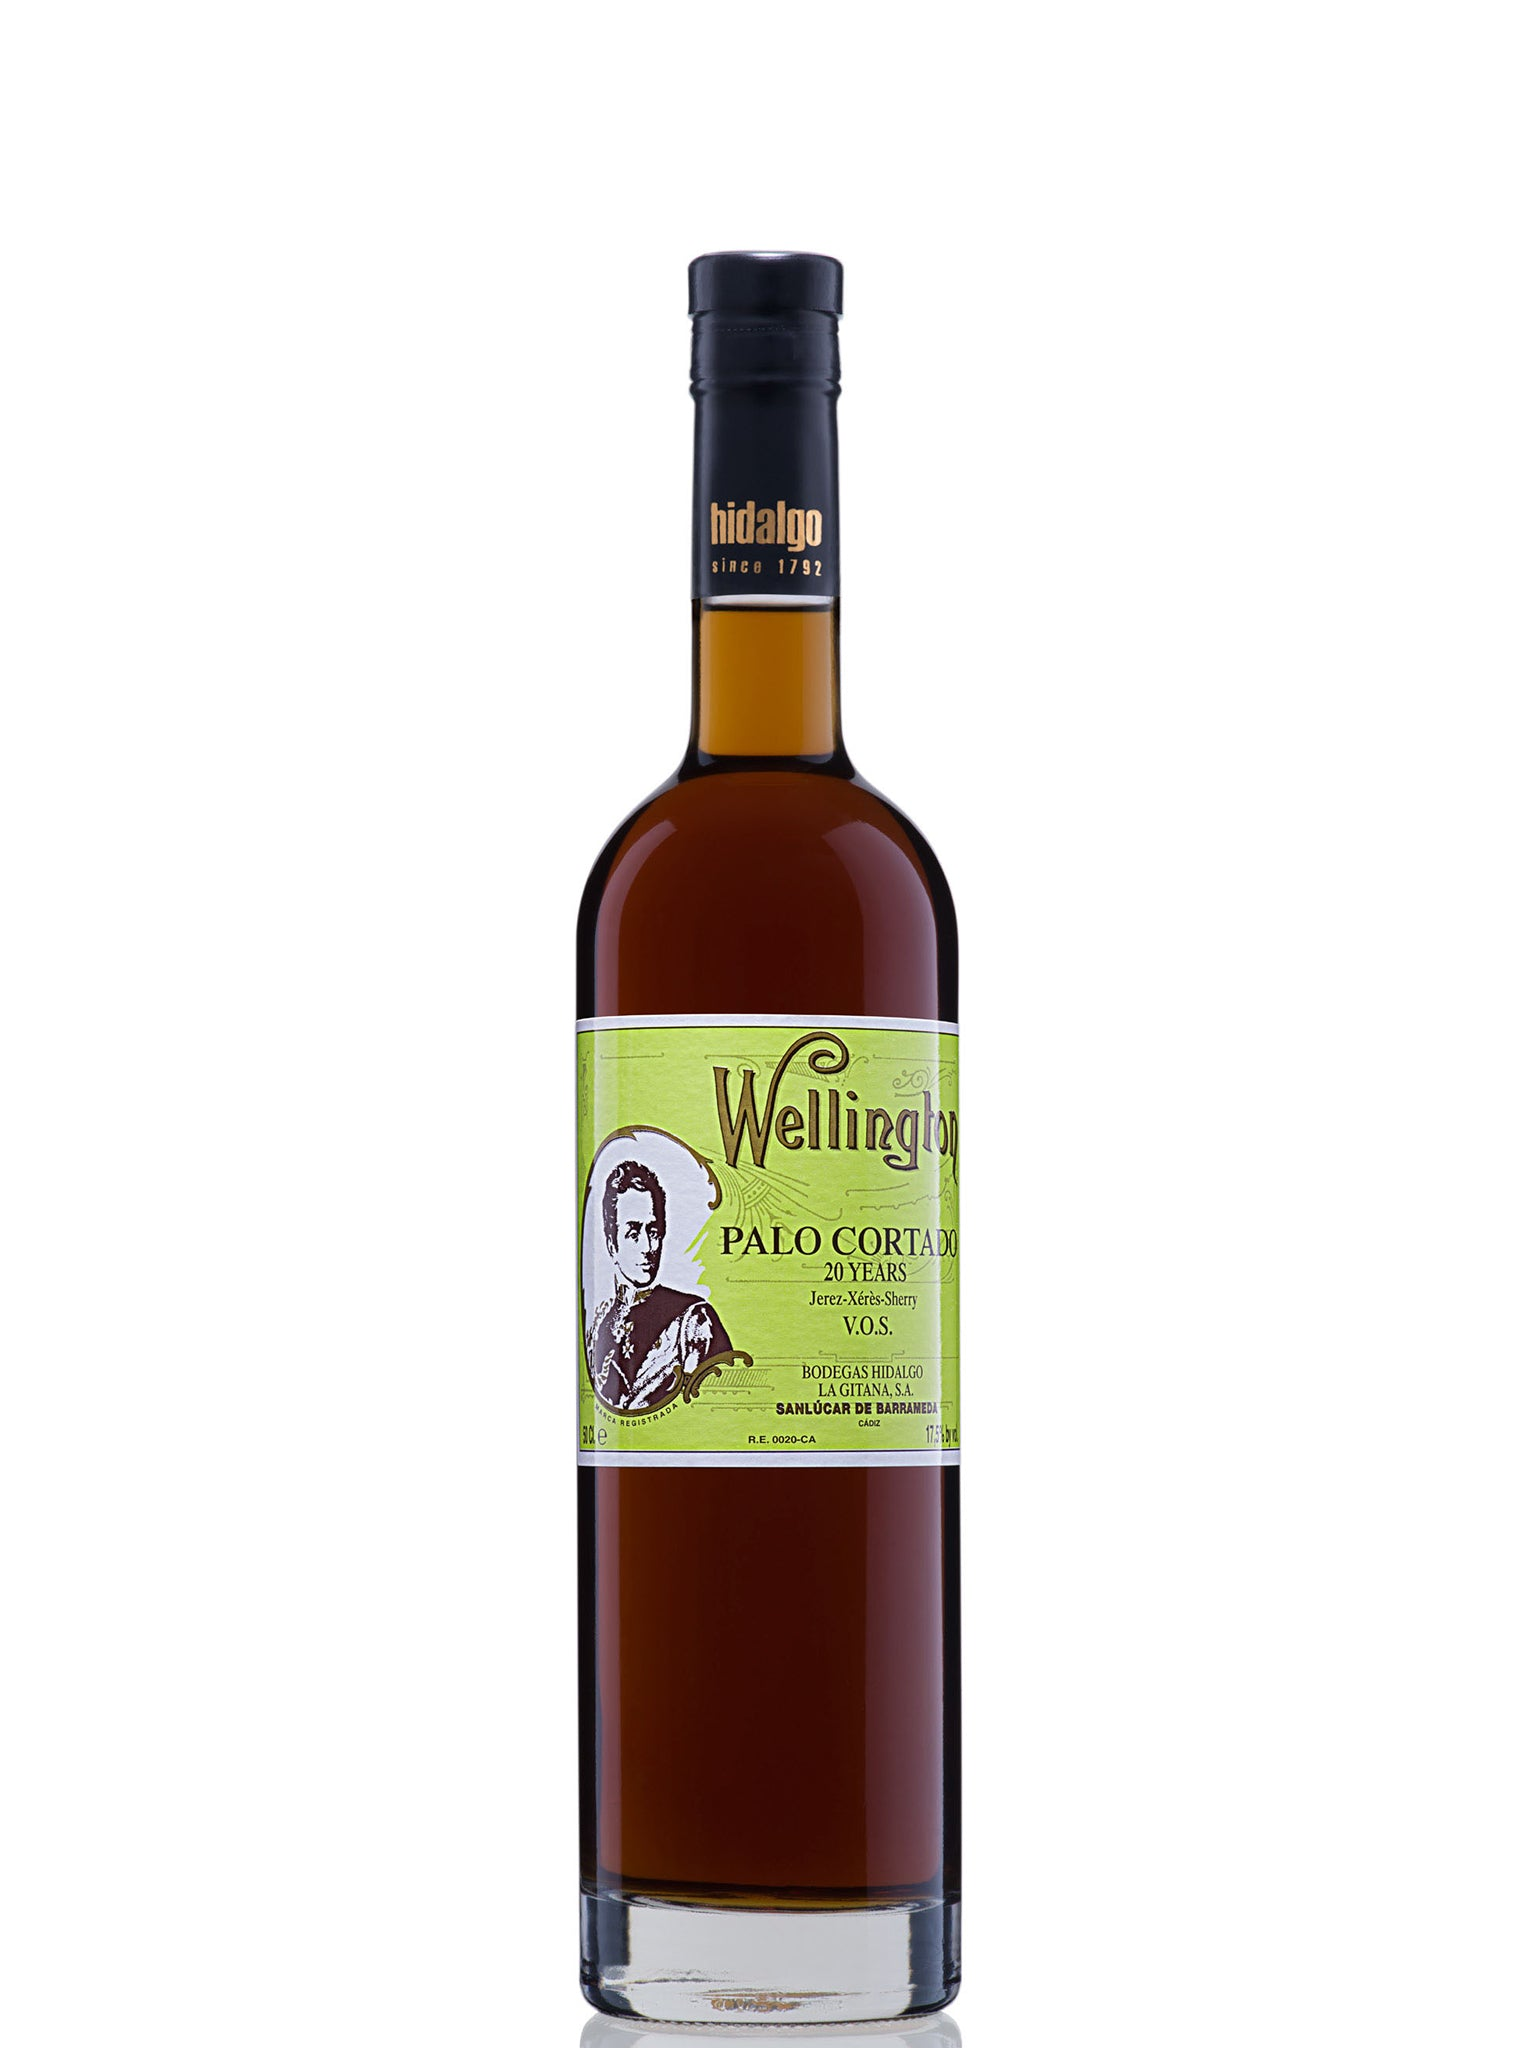 Hidalgo Wellington Palo Cortado VOS 20yrs 500ml 6pk